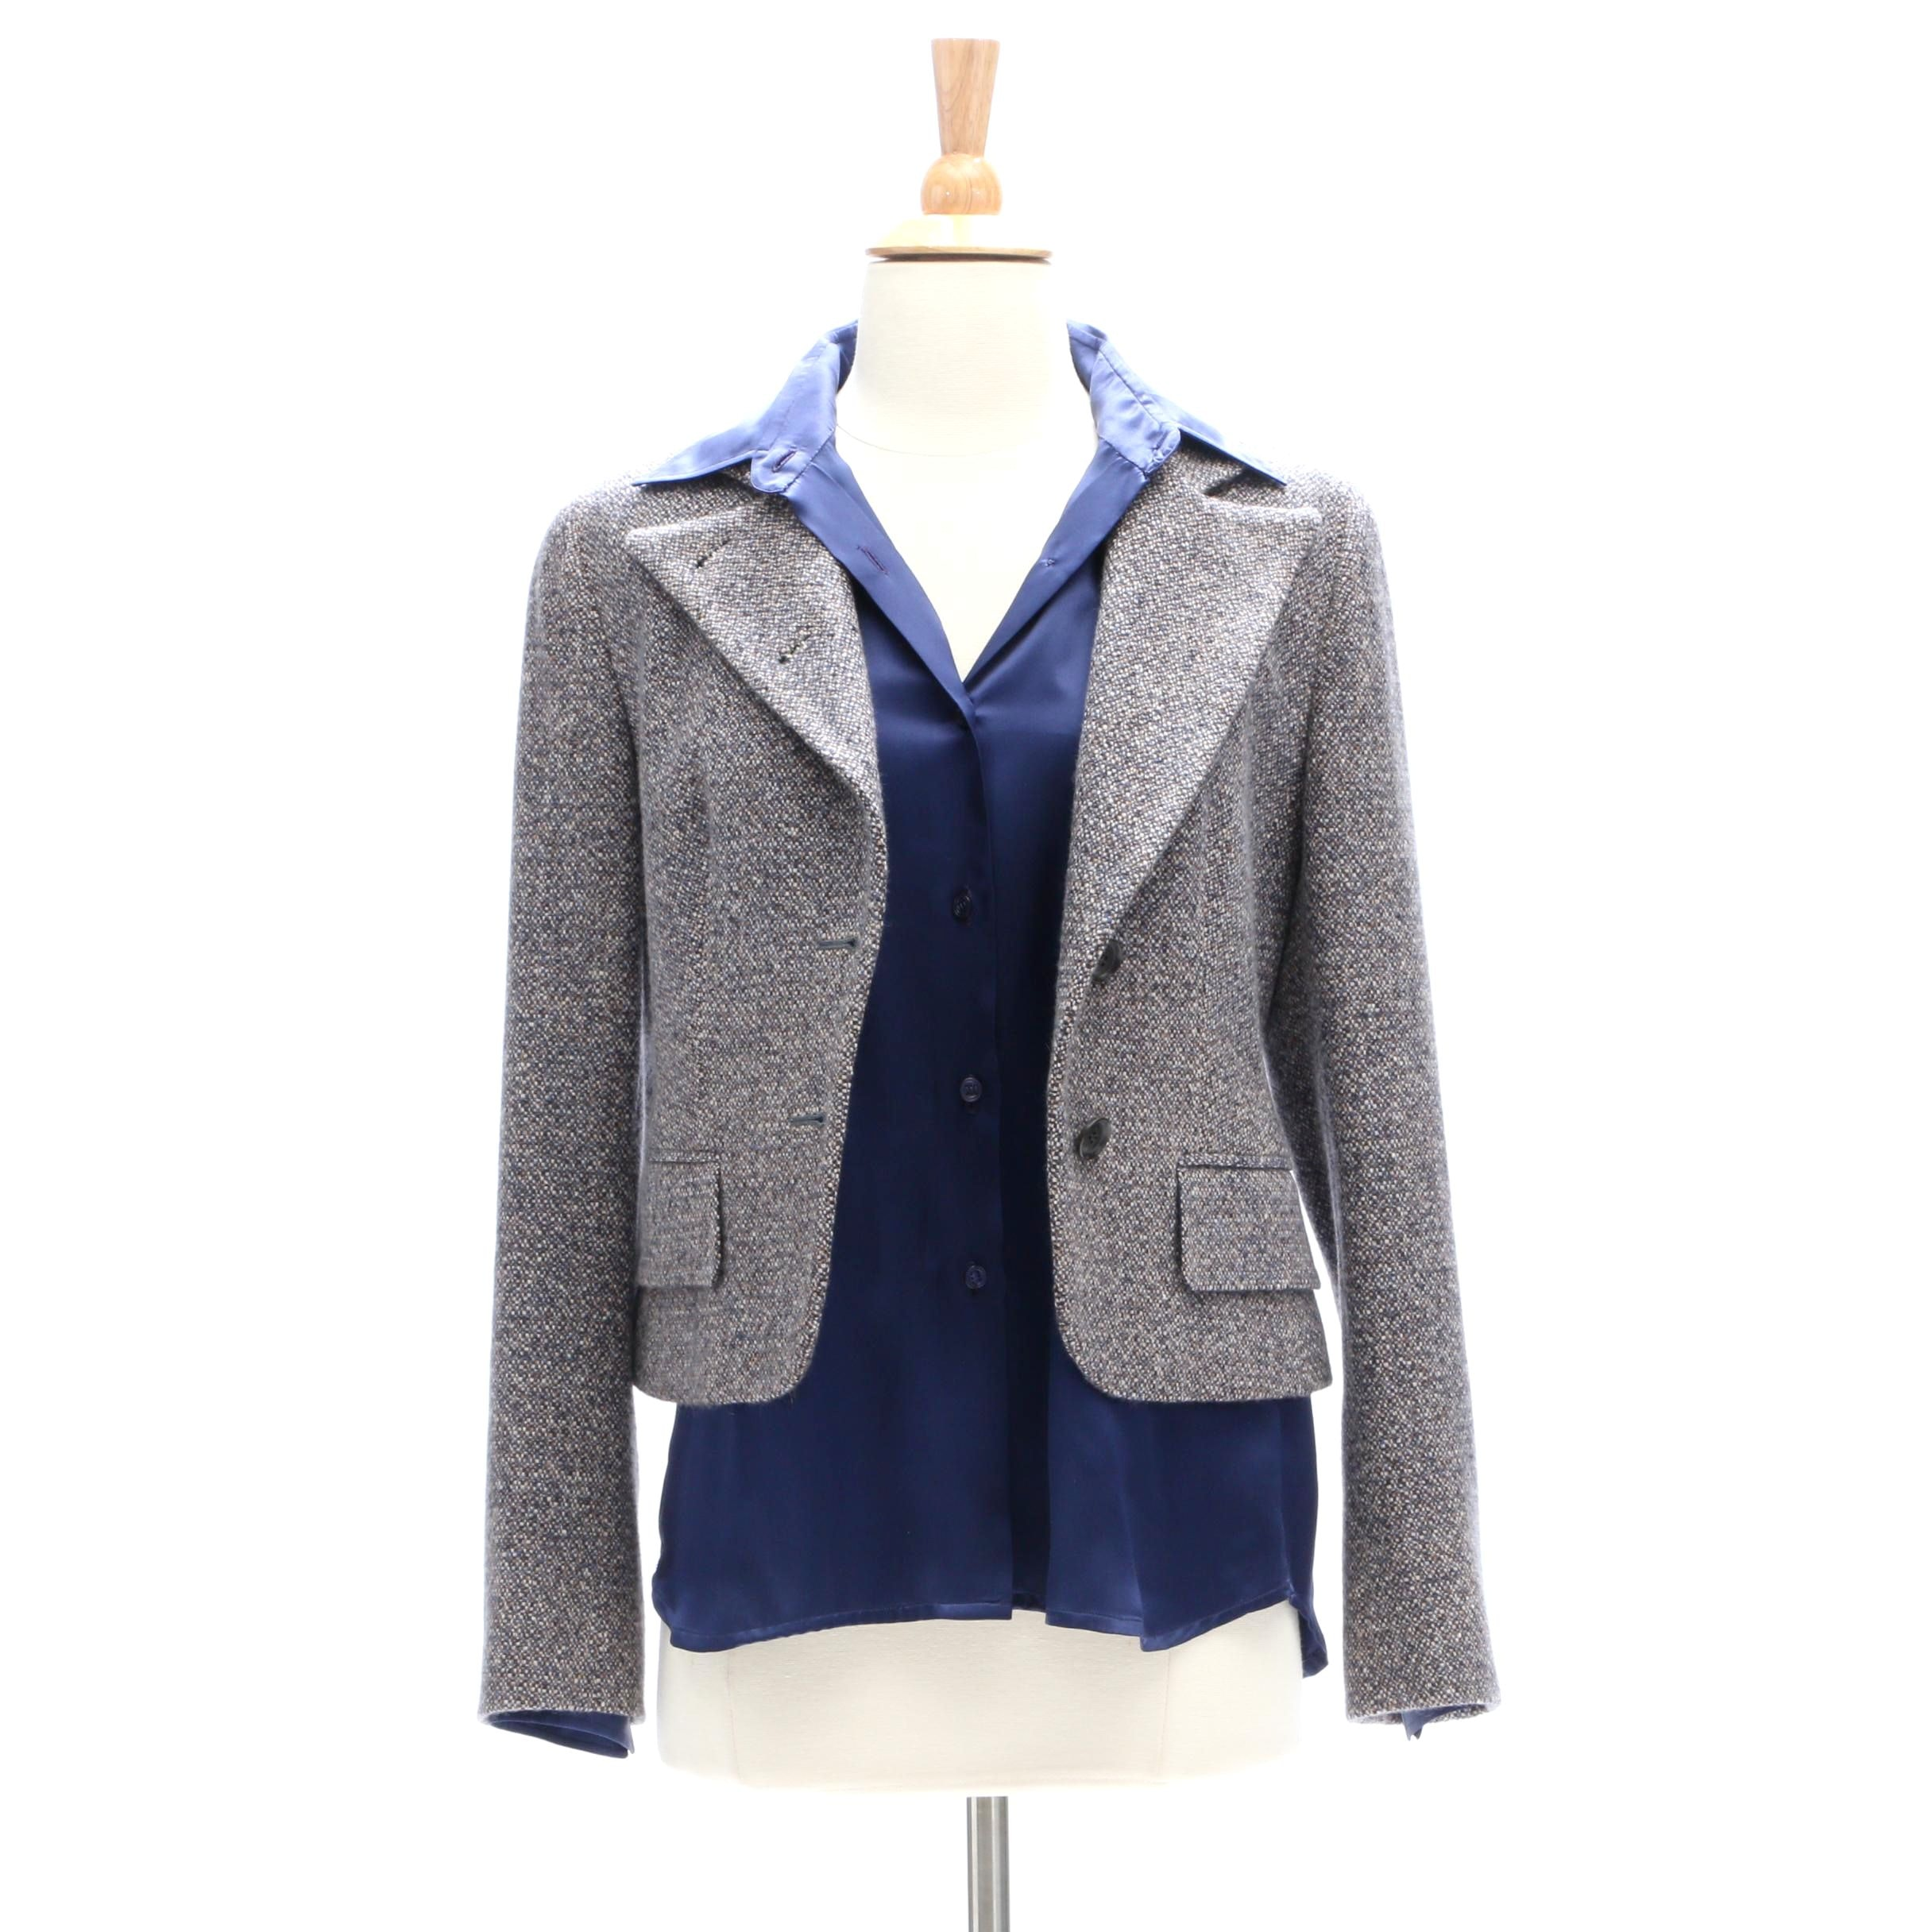 Women's Kiton Cashmere Tweed Jacket and Silk Blouse